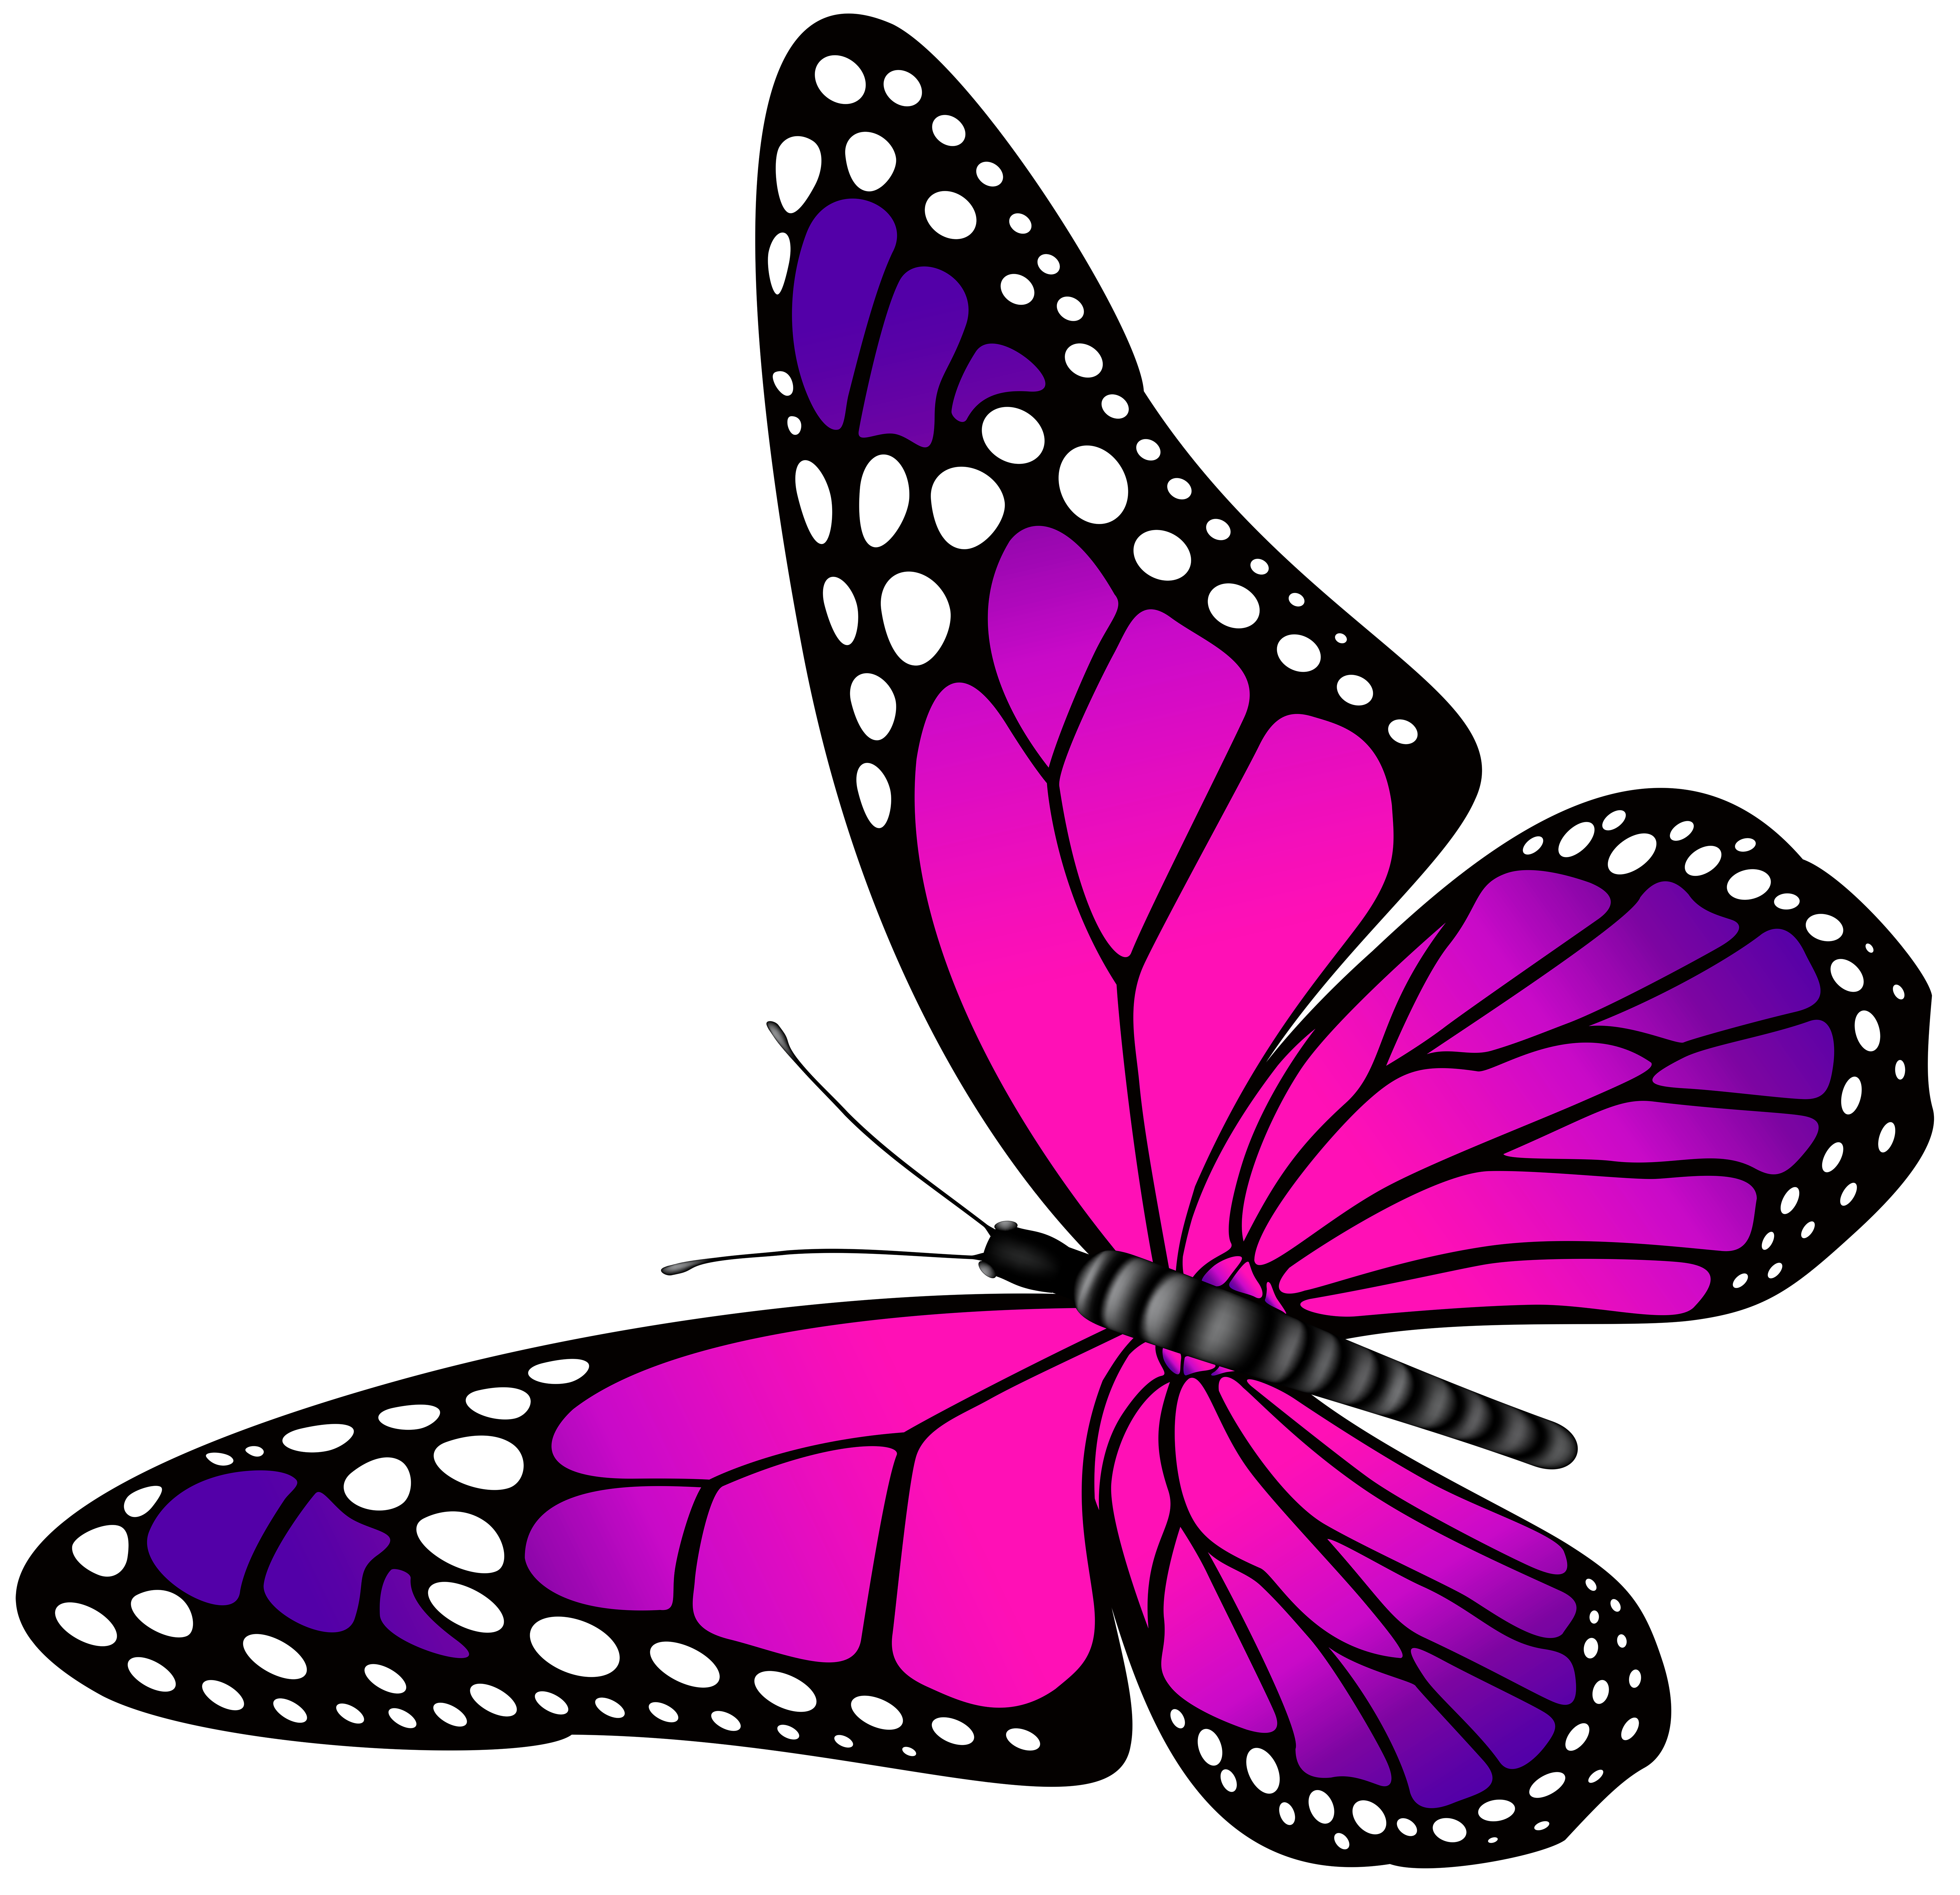 Clipart images of thanksgiving butterflies clip art freeuse download Butterfly Clipart For Kids at GetDrawings.com | Free for personal ... clip art freeuse download